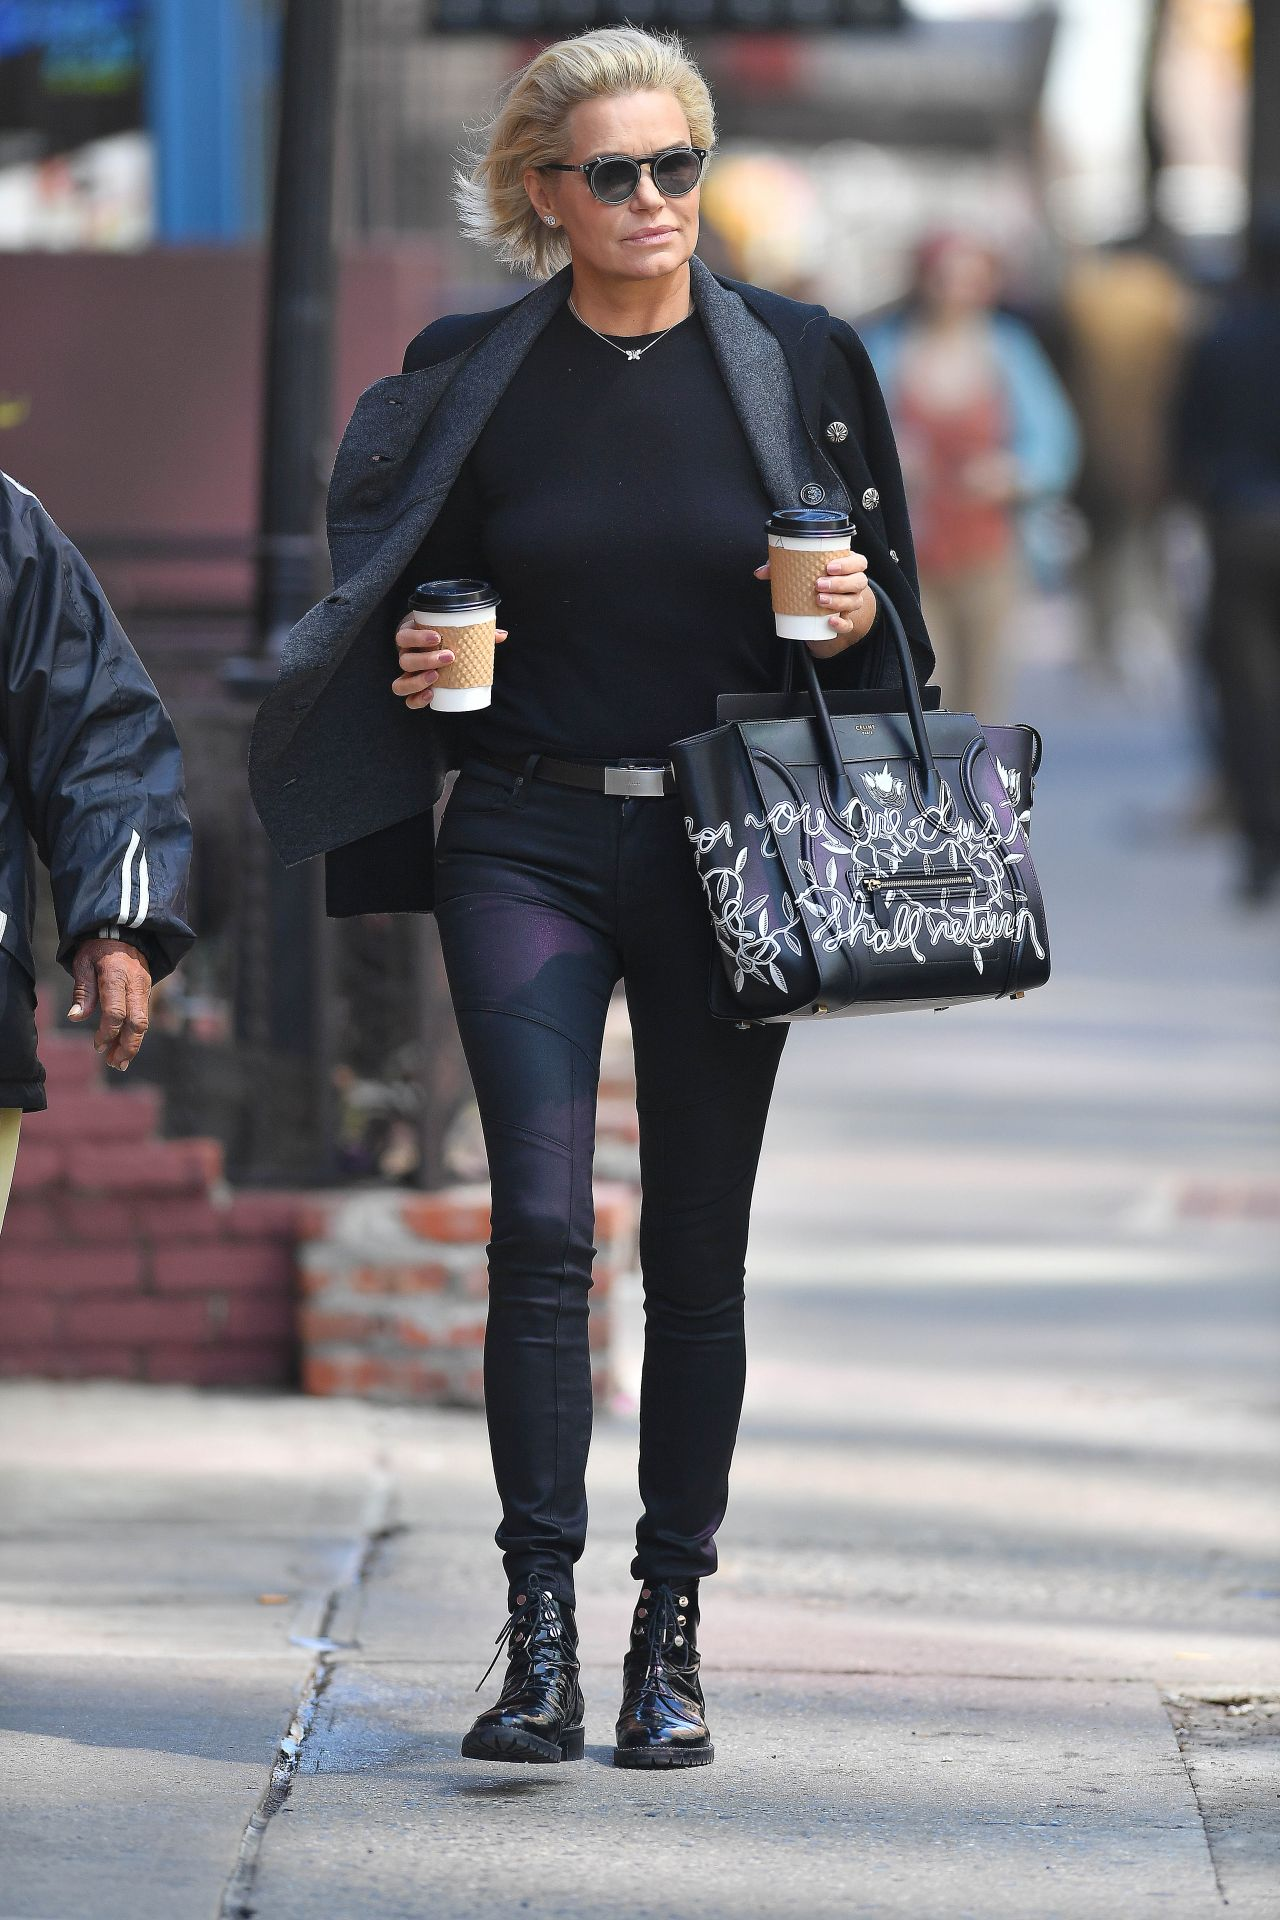 28c0d4fde3 Yolanda Hadid Carrying a Celine Handbag in New York City 4 10 2017